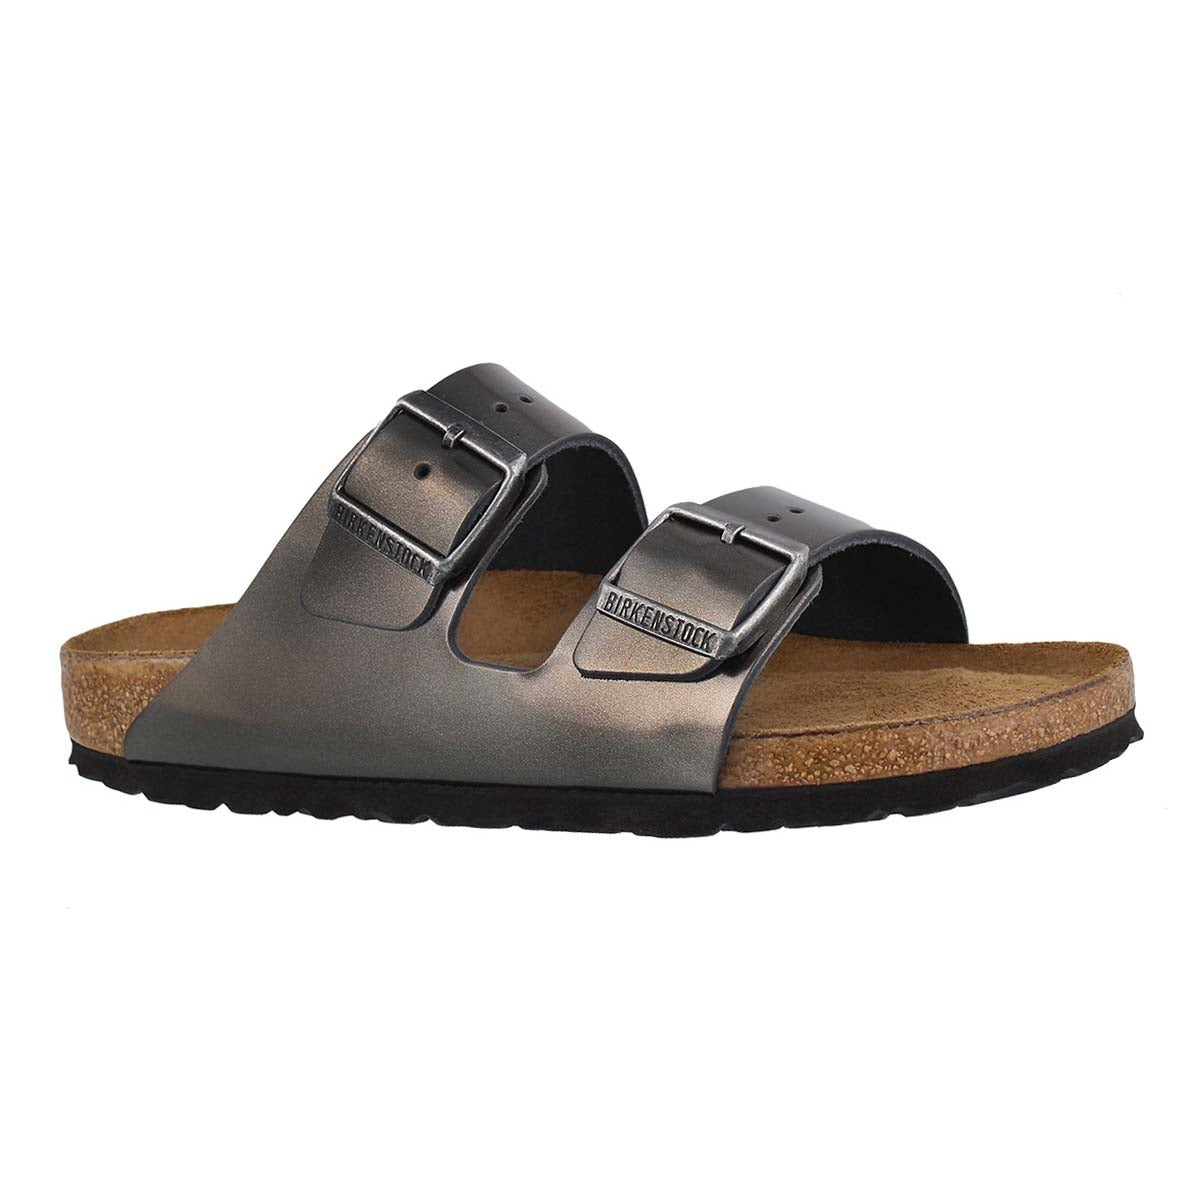 Women's ARIZONA LTR mtlc anthrcite sandals -Narrow